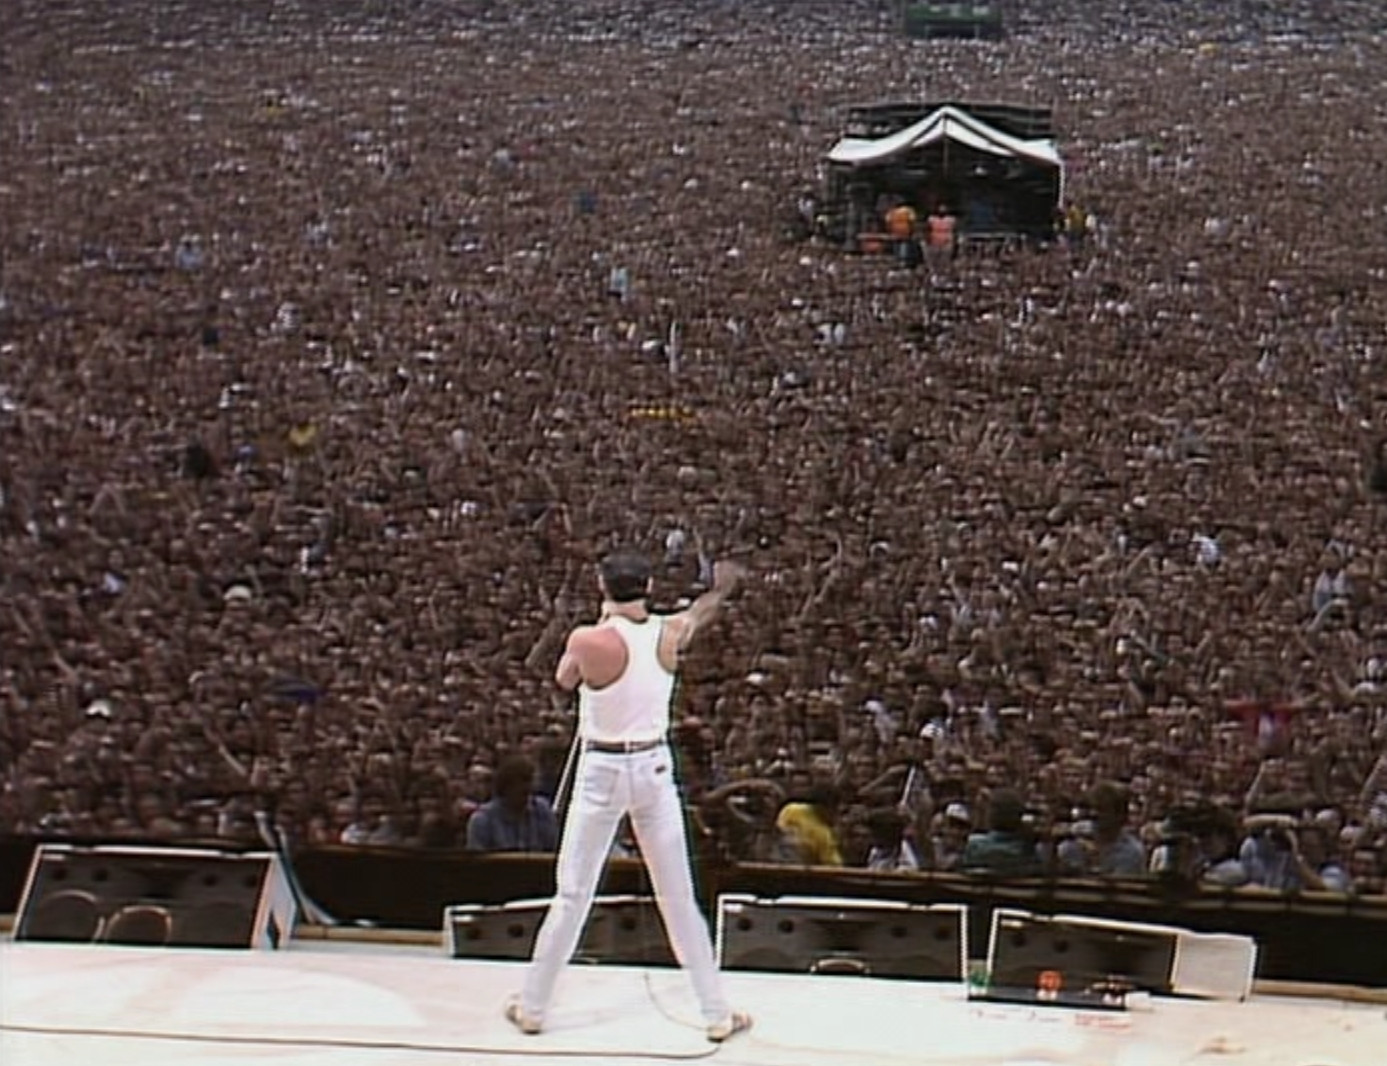 Freddie Mercury at LiveAid